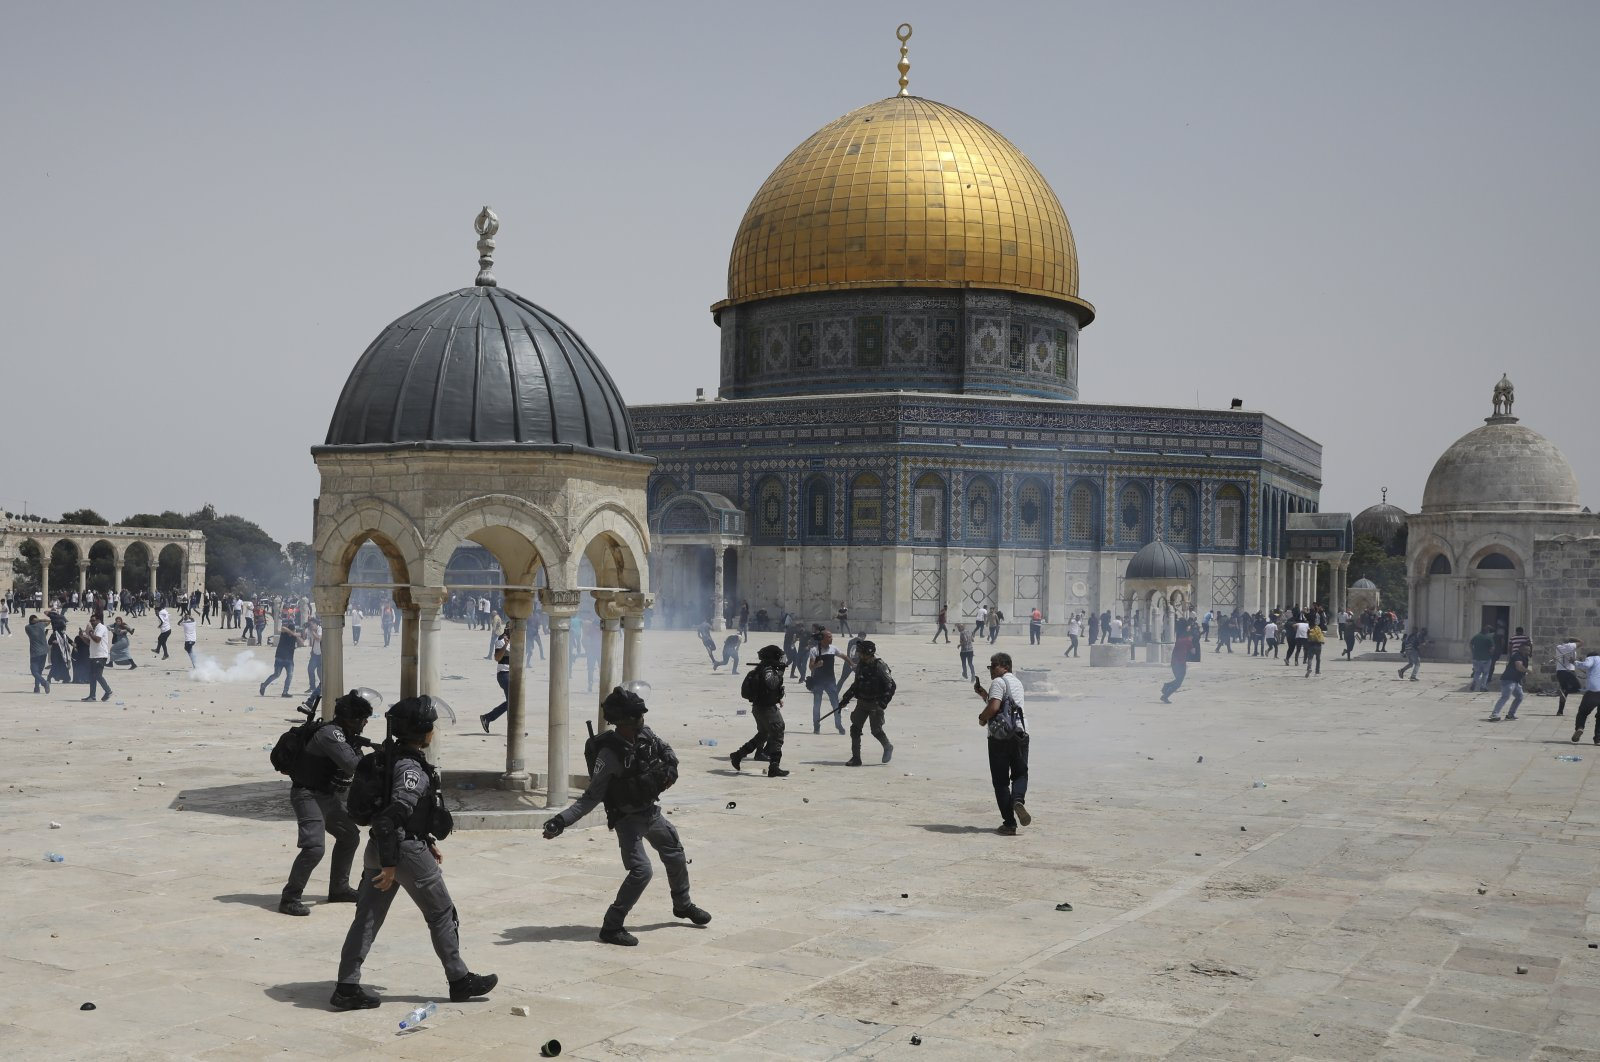 Palestinians run from stun grenades thrown by Israeli police in front of the Dome of the Rock in the Al-Aqsa compound, East Jerusalem, occupied Palestine, May 21, 2021. (AP Photo)